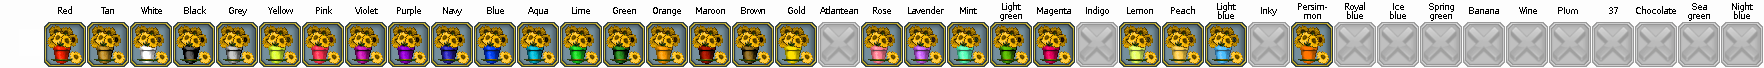 Colors-trinket-Potted sunflowers.png